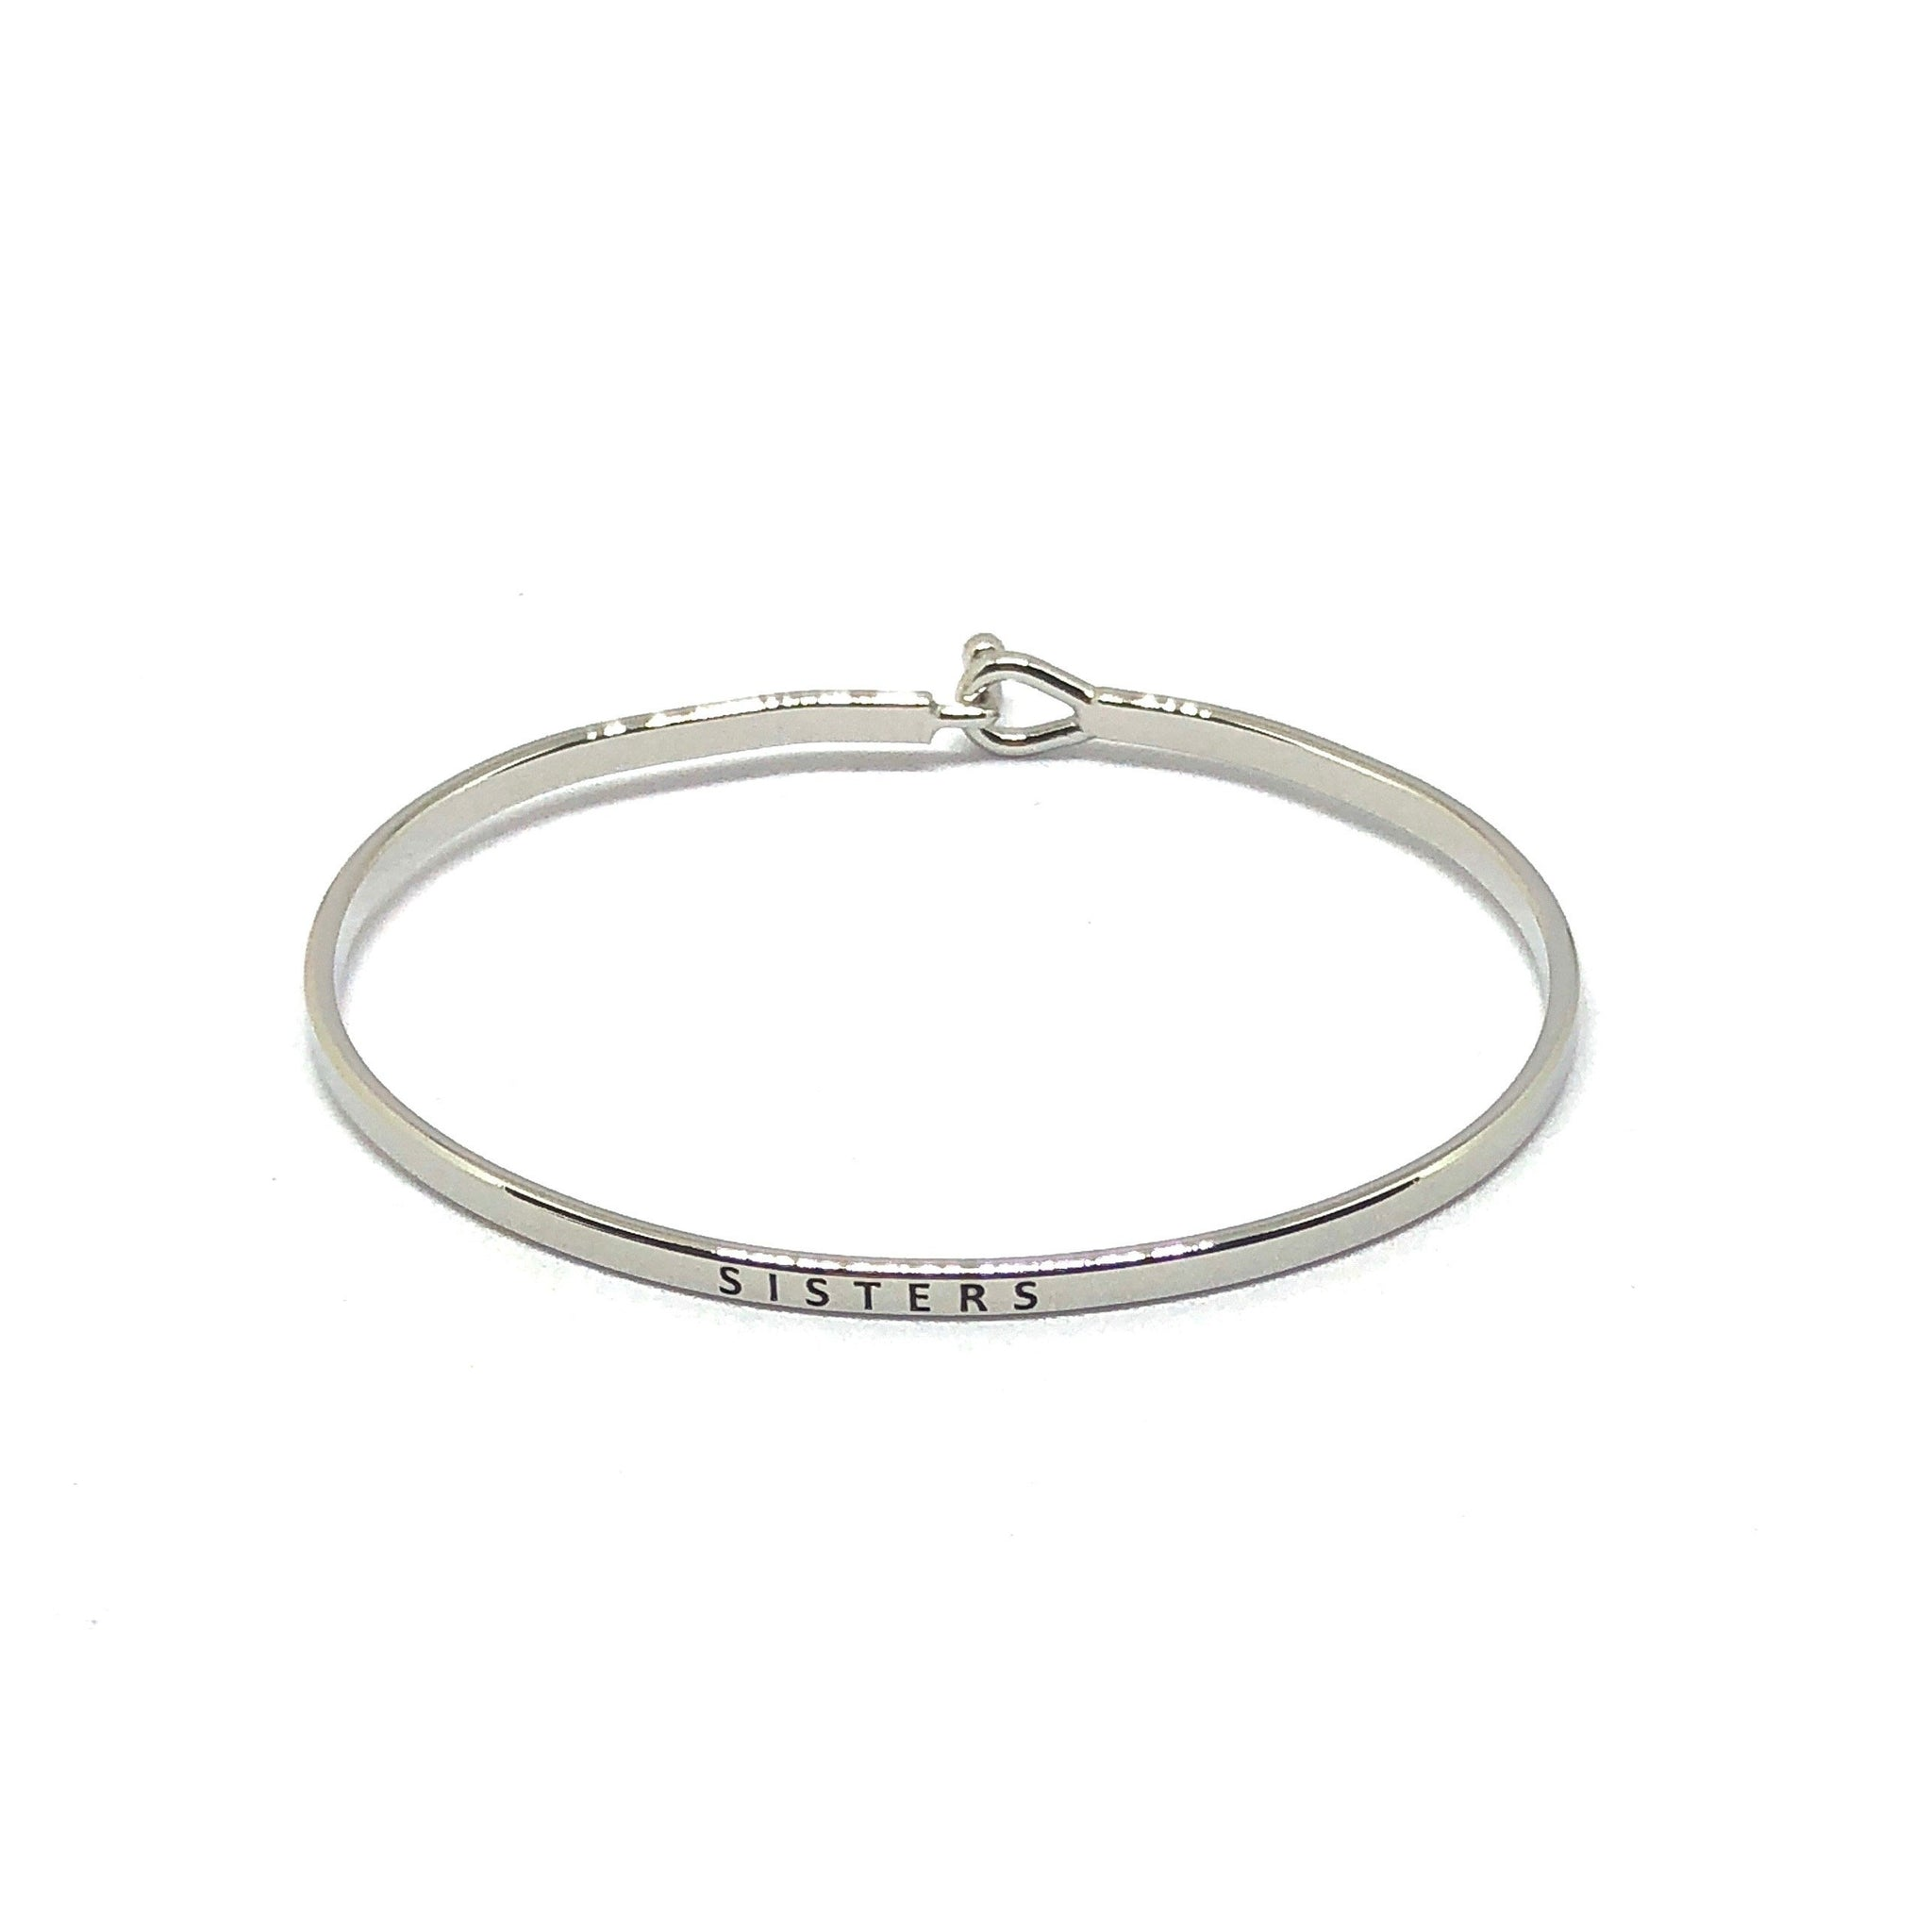 Sisters Inspirational Bangle - SPREE